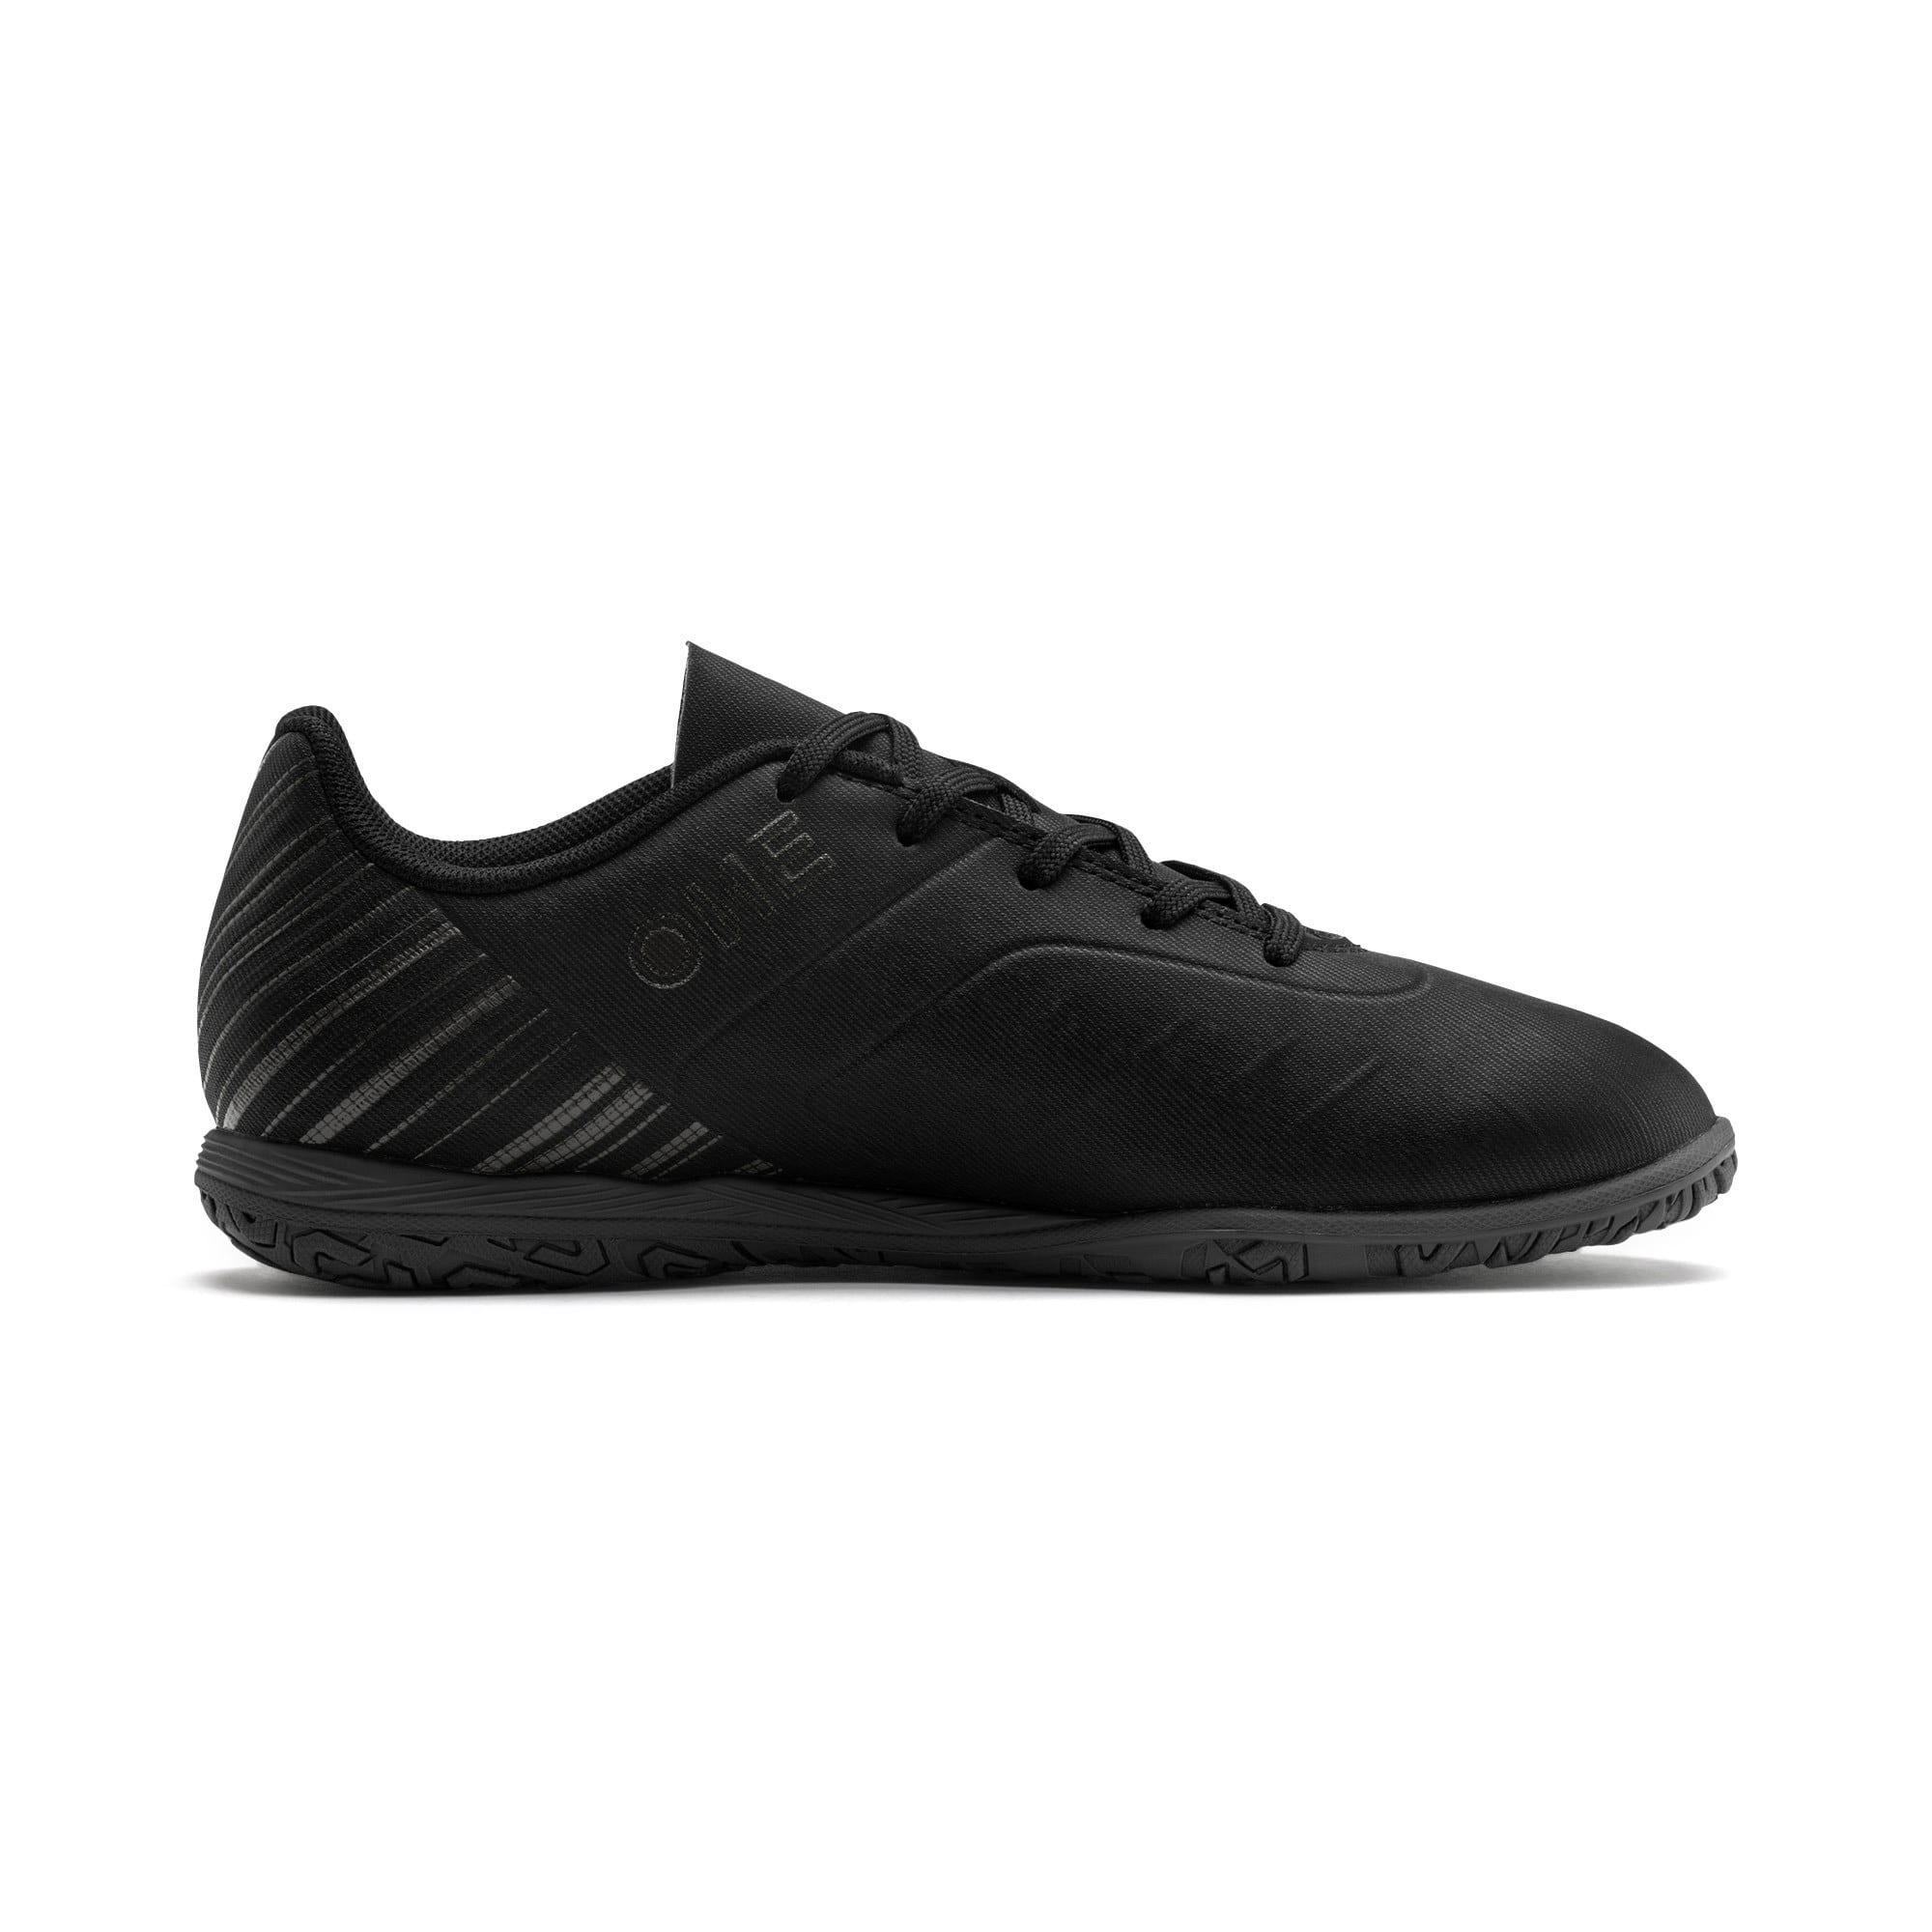 Thumbnail 5 of PUMA ONE 5.4 IT Youth Fußballschuhe, Black-Black-Puma Aged Silver, medium